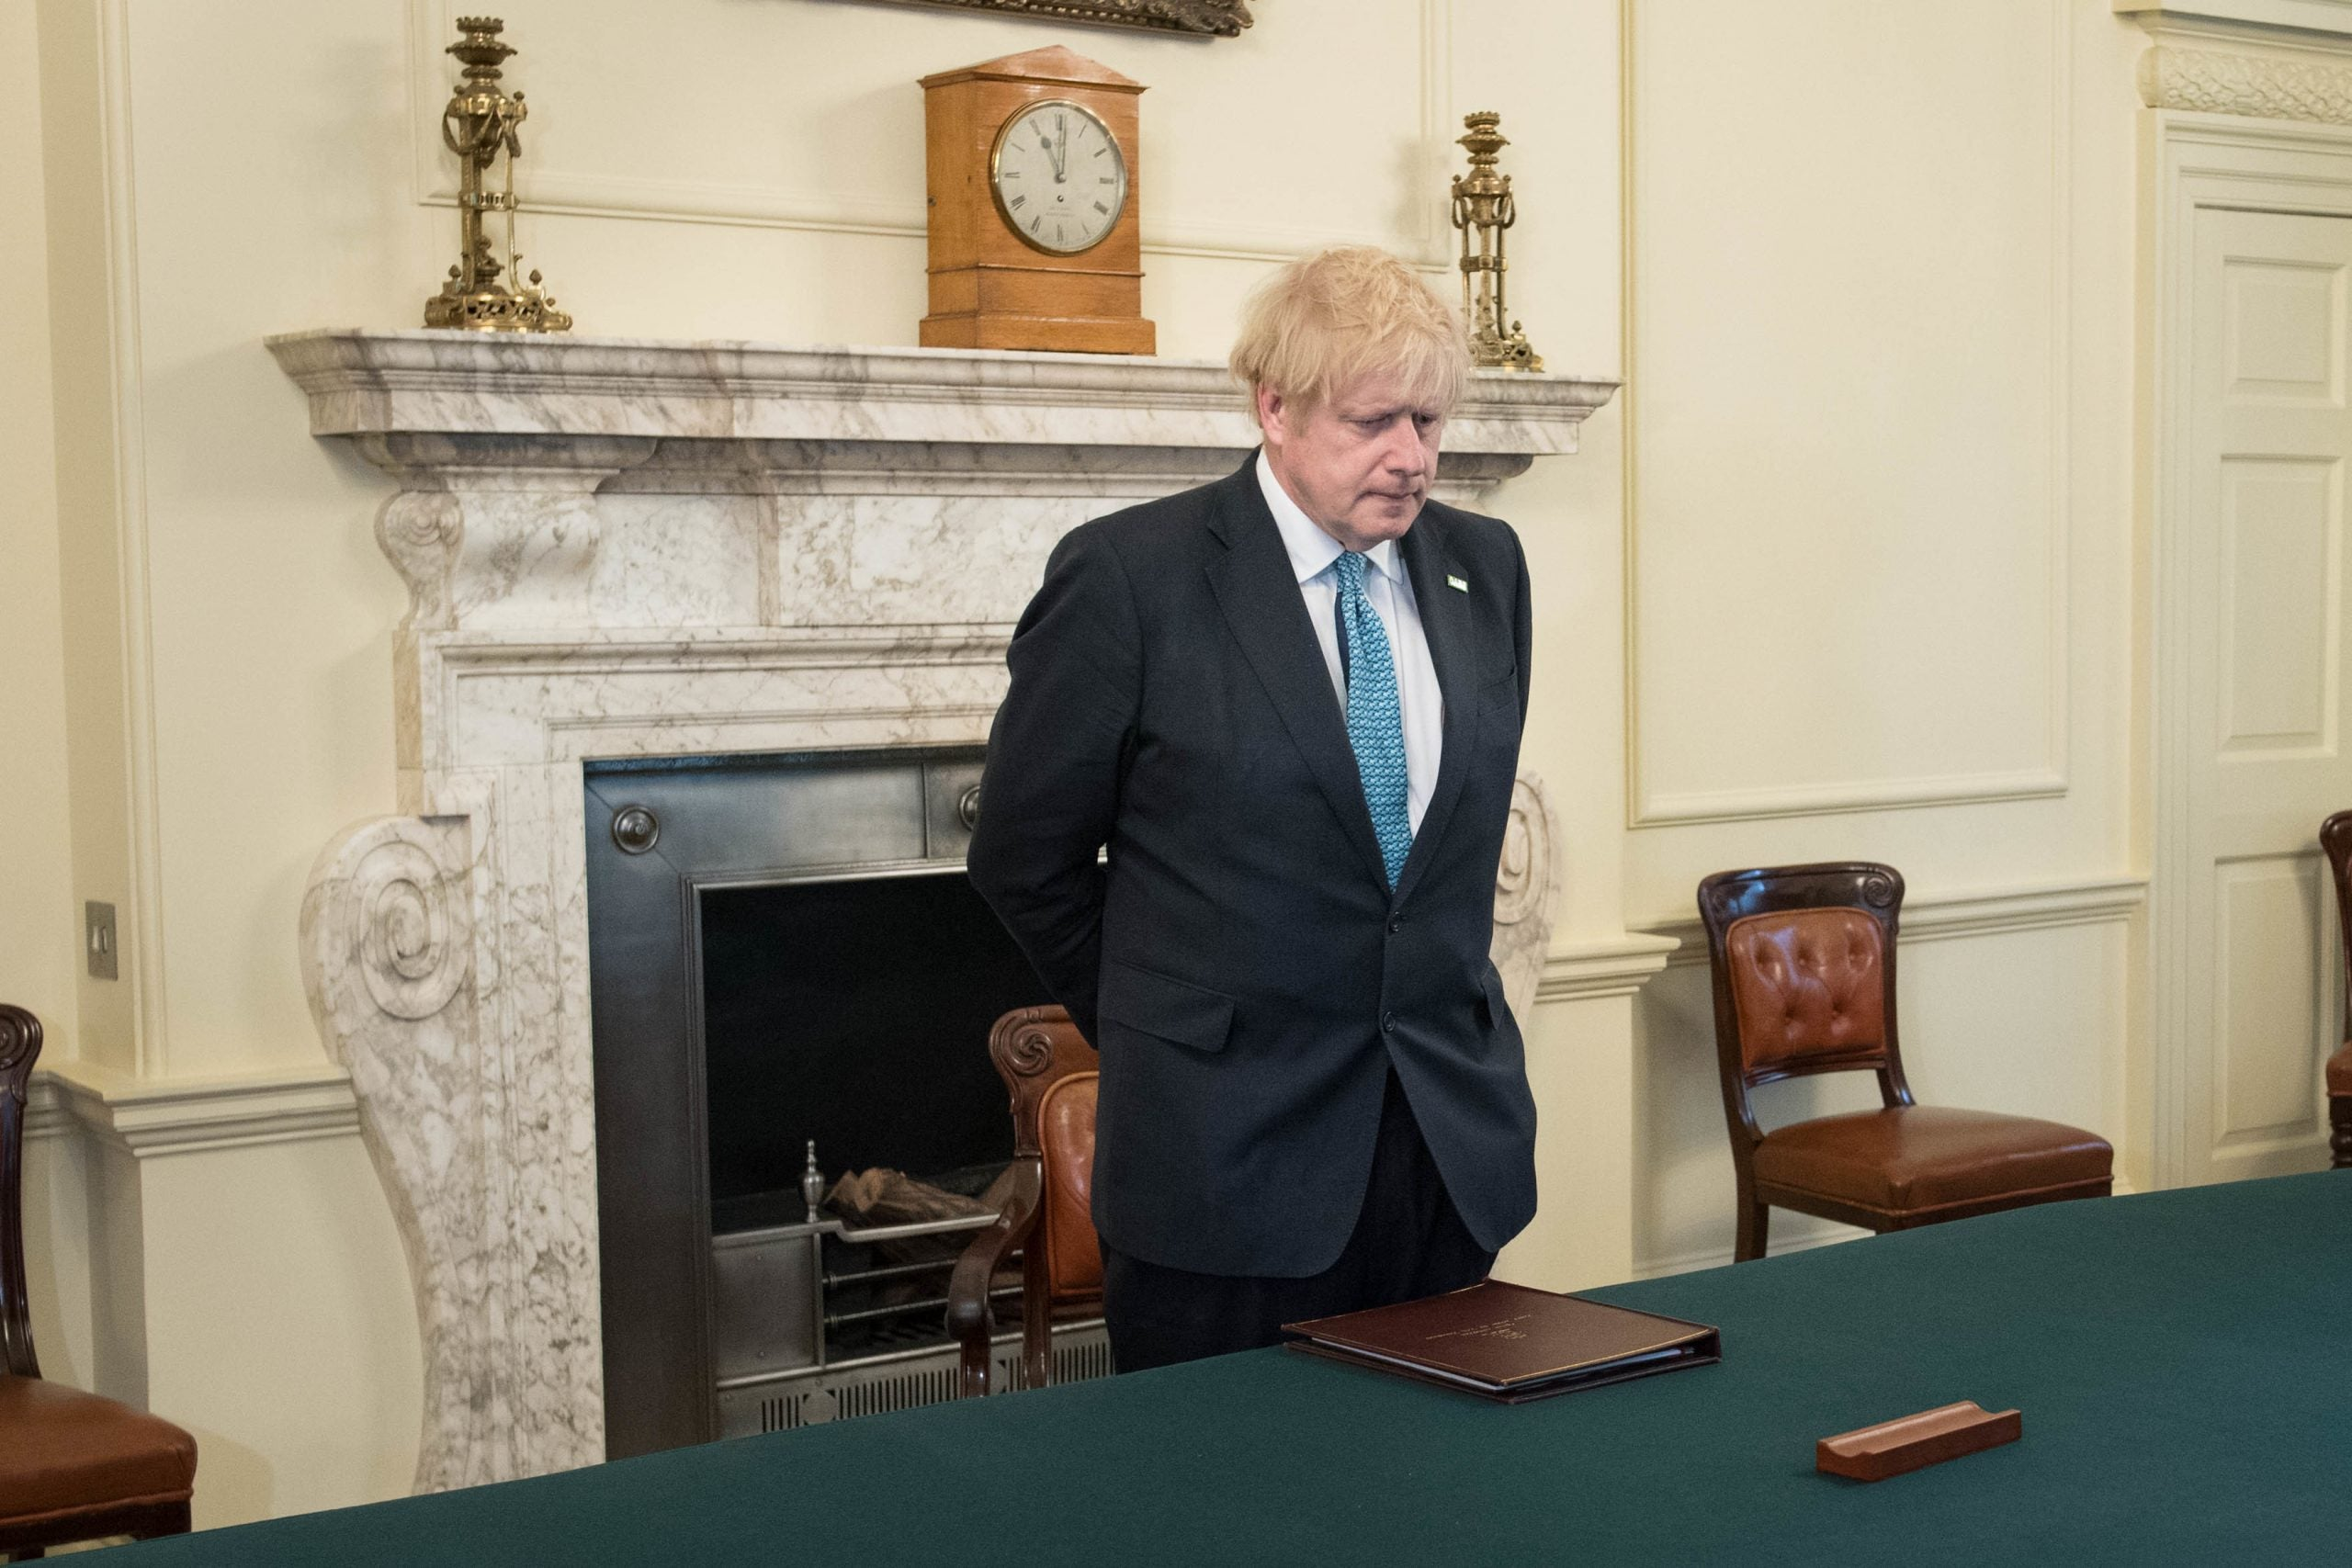 Boris Johnson commits to an exit strategy, but normality is some way off